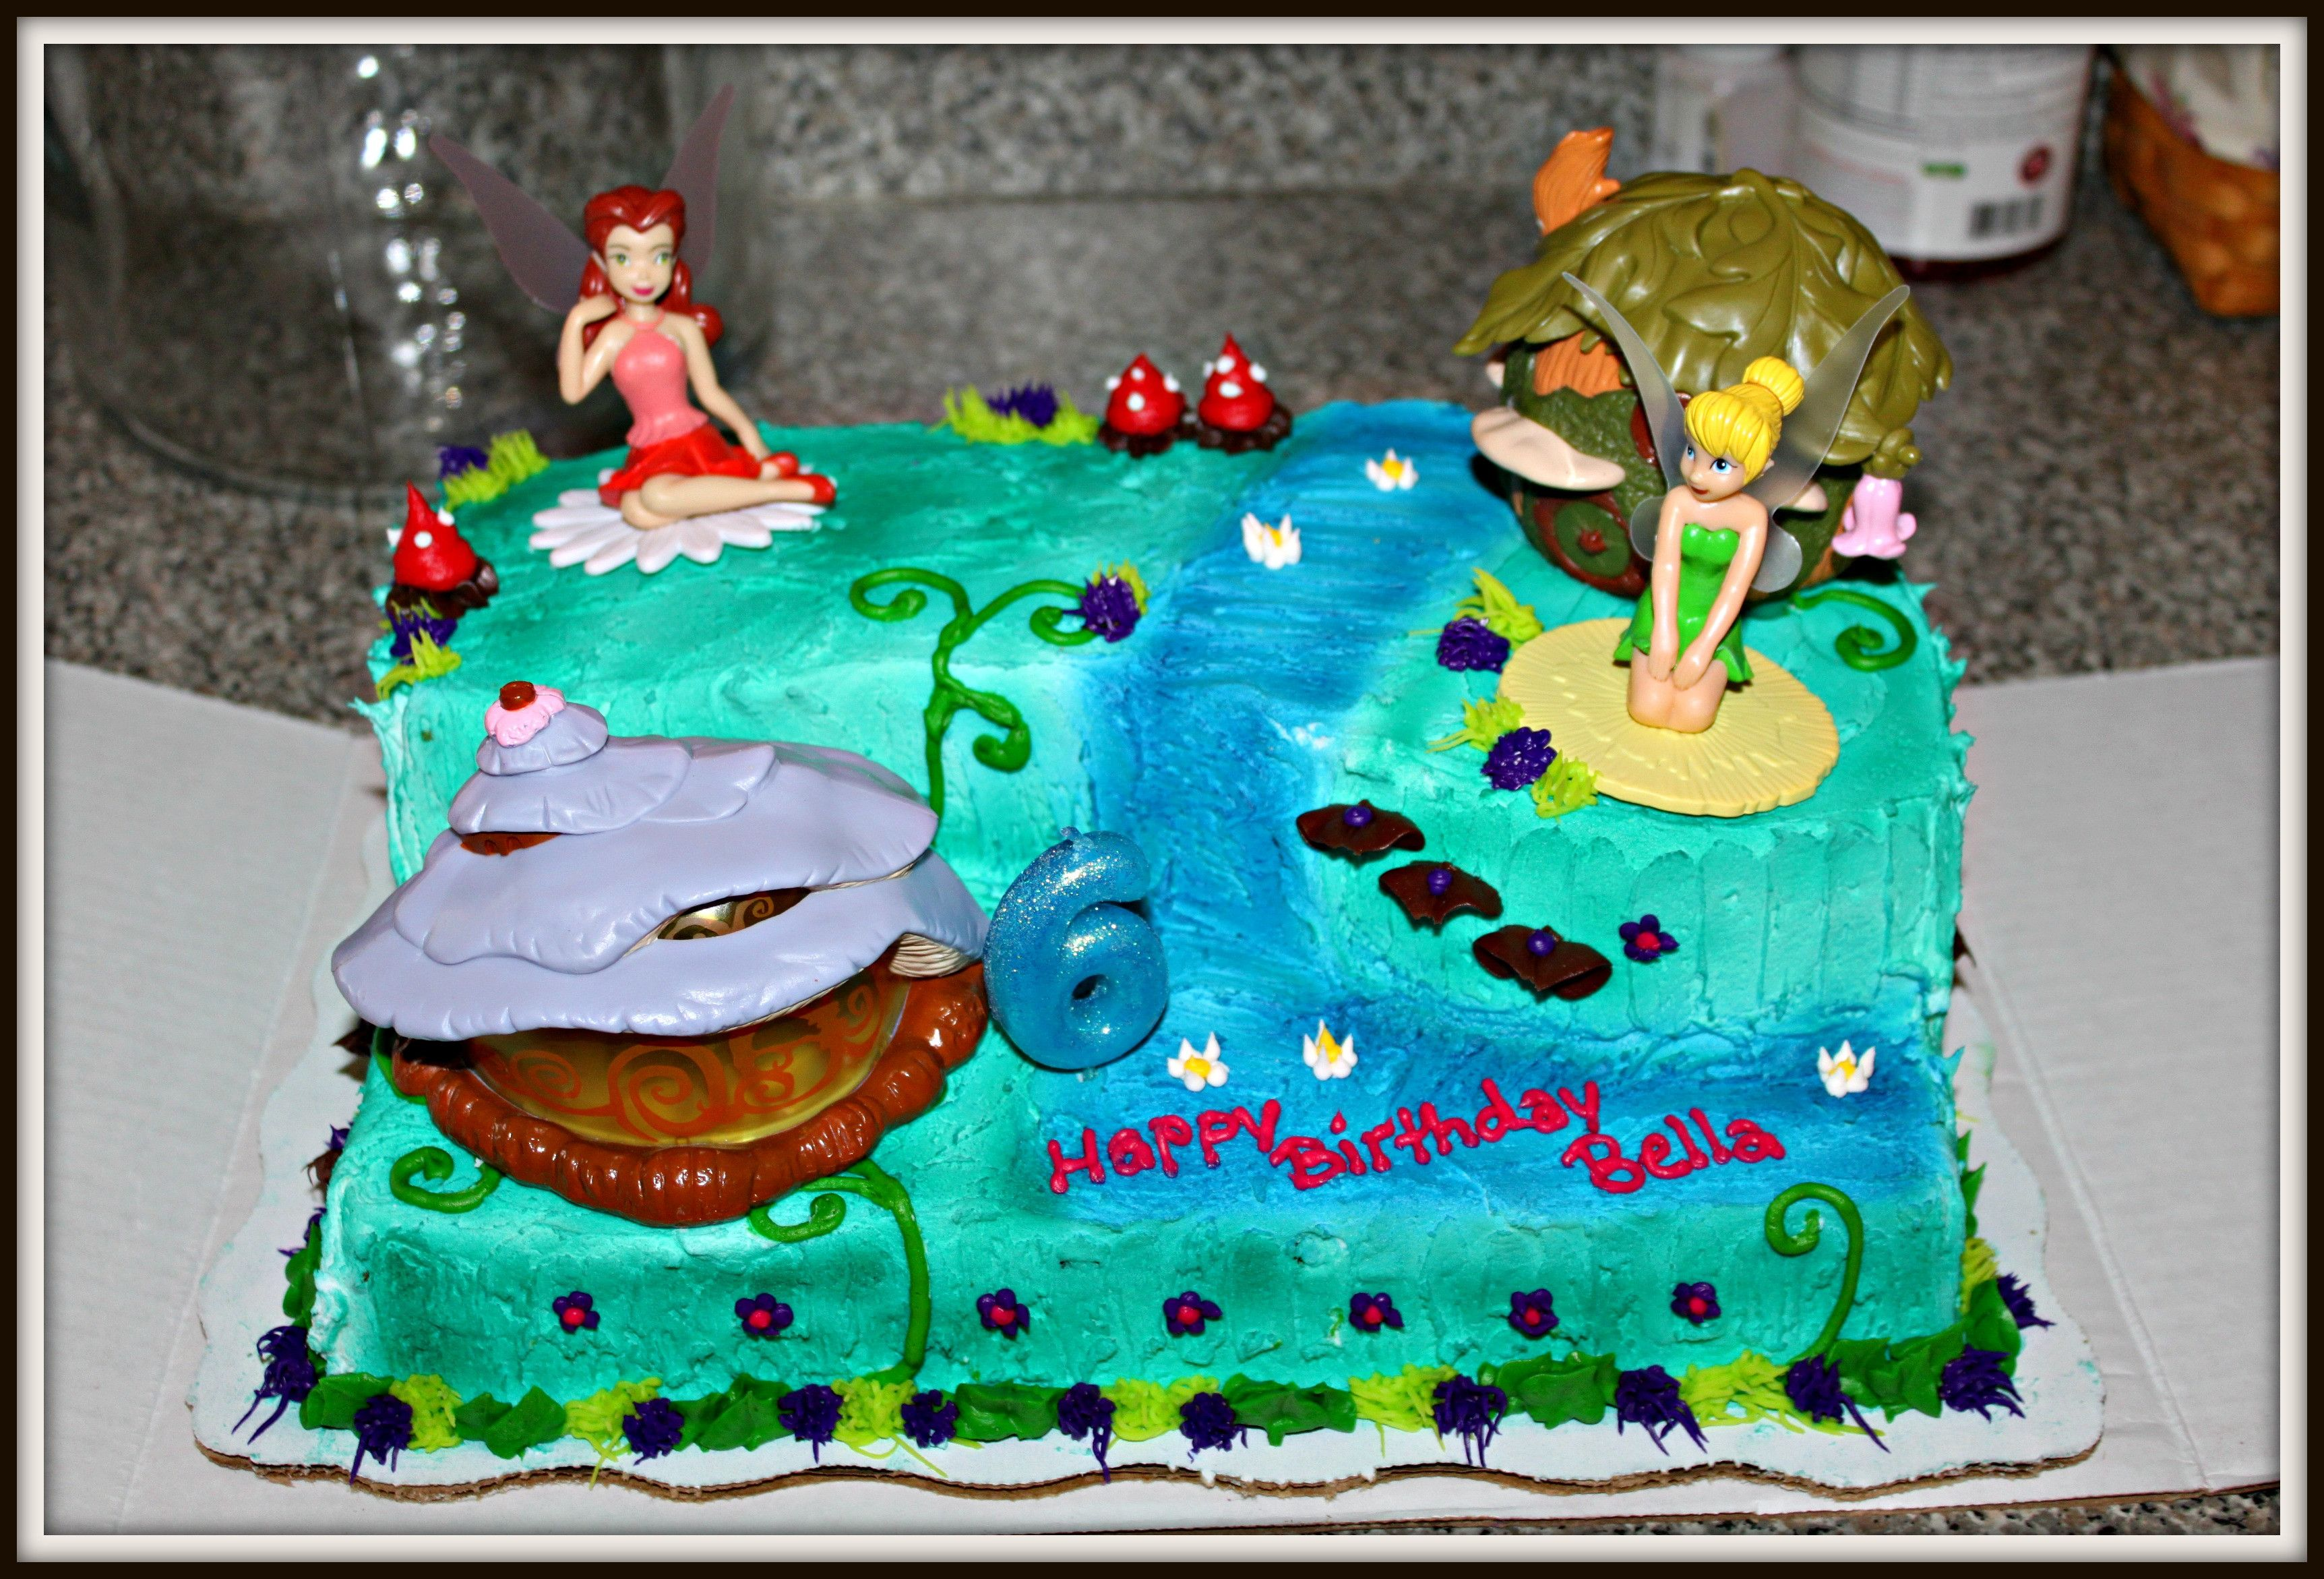 Magnificent Walmart Bakery Birthday Cake Catalog The Best Walmart Cakes For Birthday Cards Printable Riciscafe Filternl